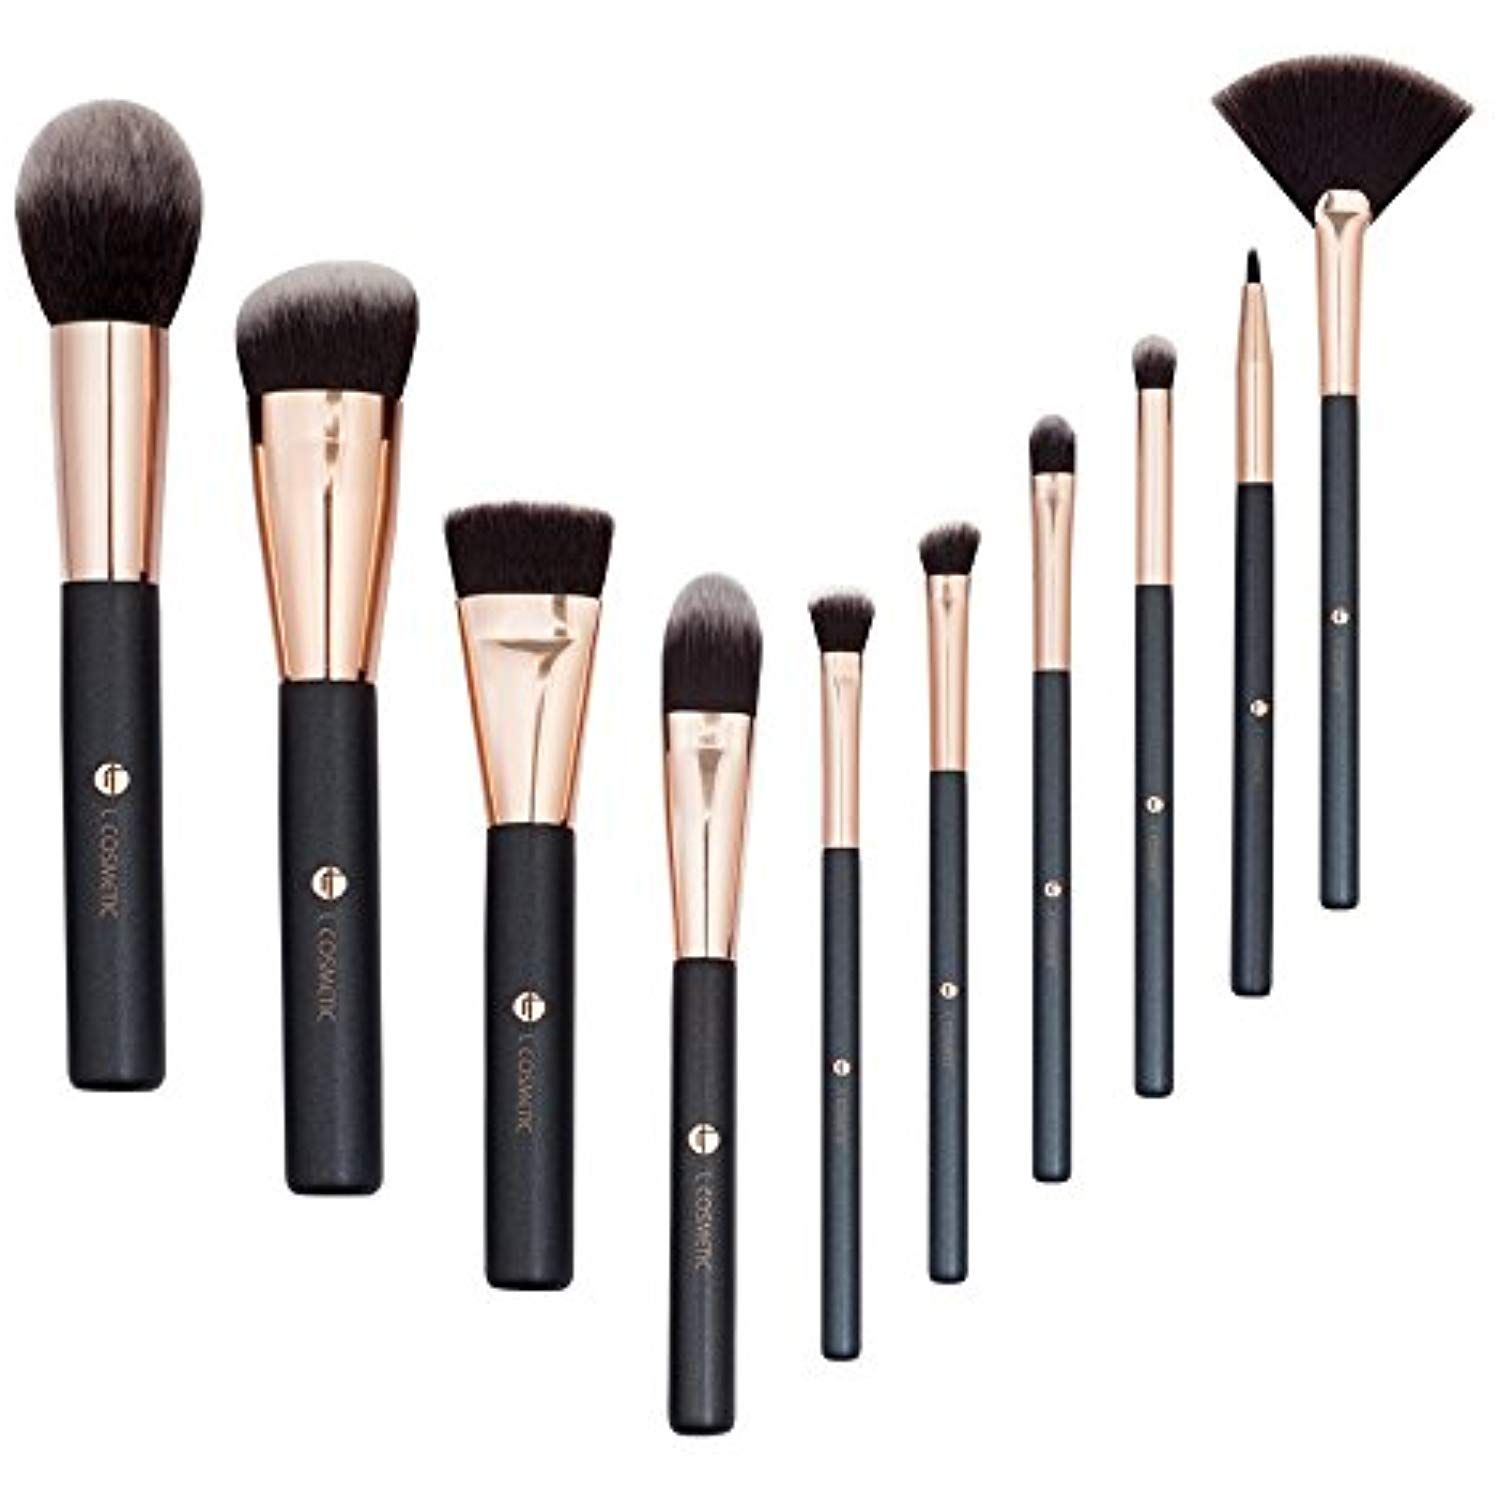 Lcosmetic Makeup Brushes 10 Piece Makeup Brush Set Professional Synthetic Eye Face Cosmetic B Cosmetic Brush Set Makeup Brush Set Makeup Brush Set Professional